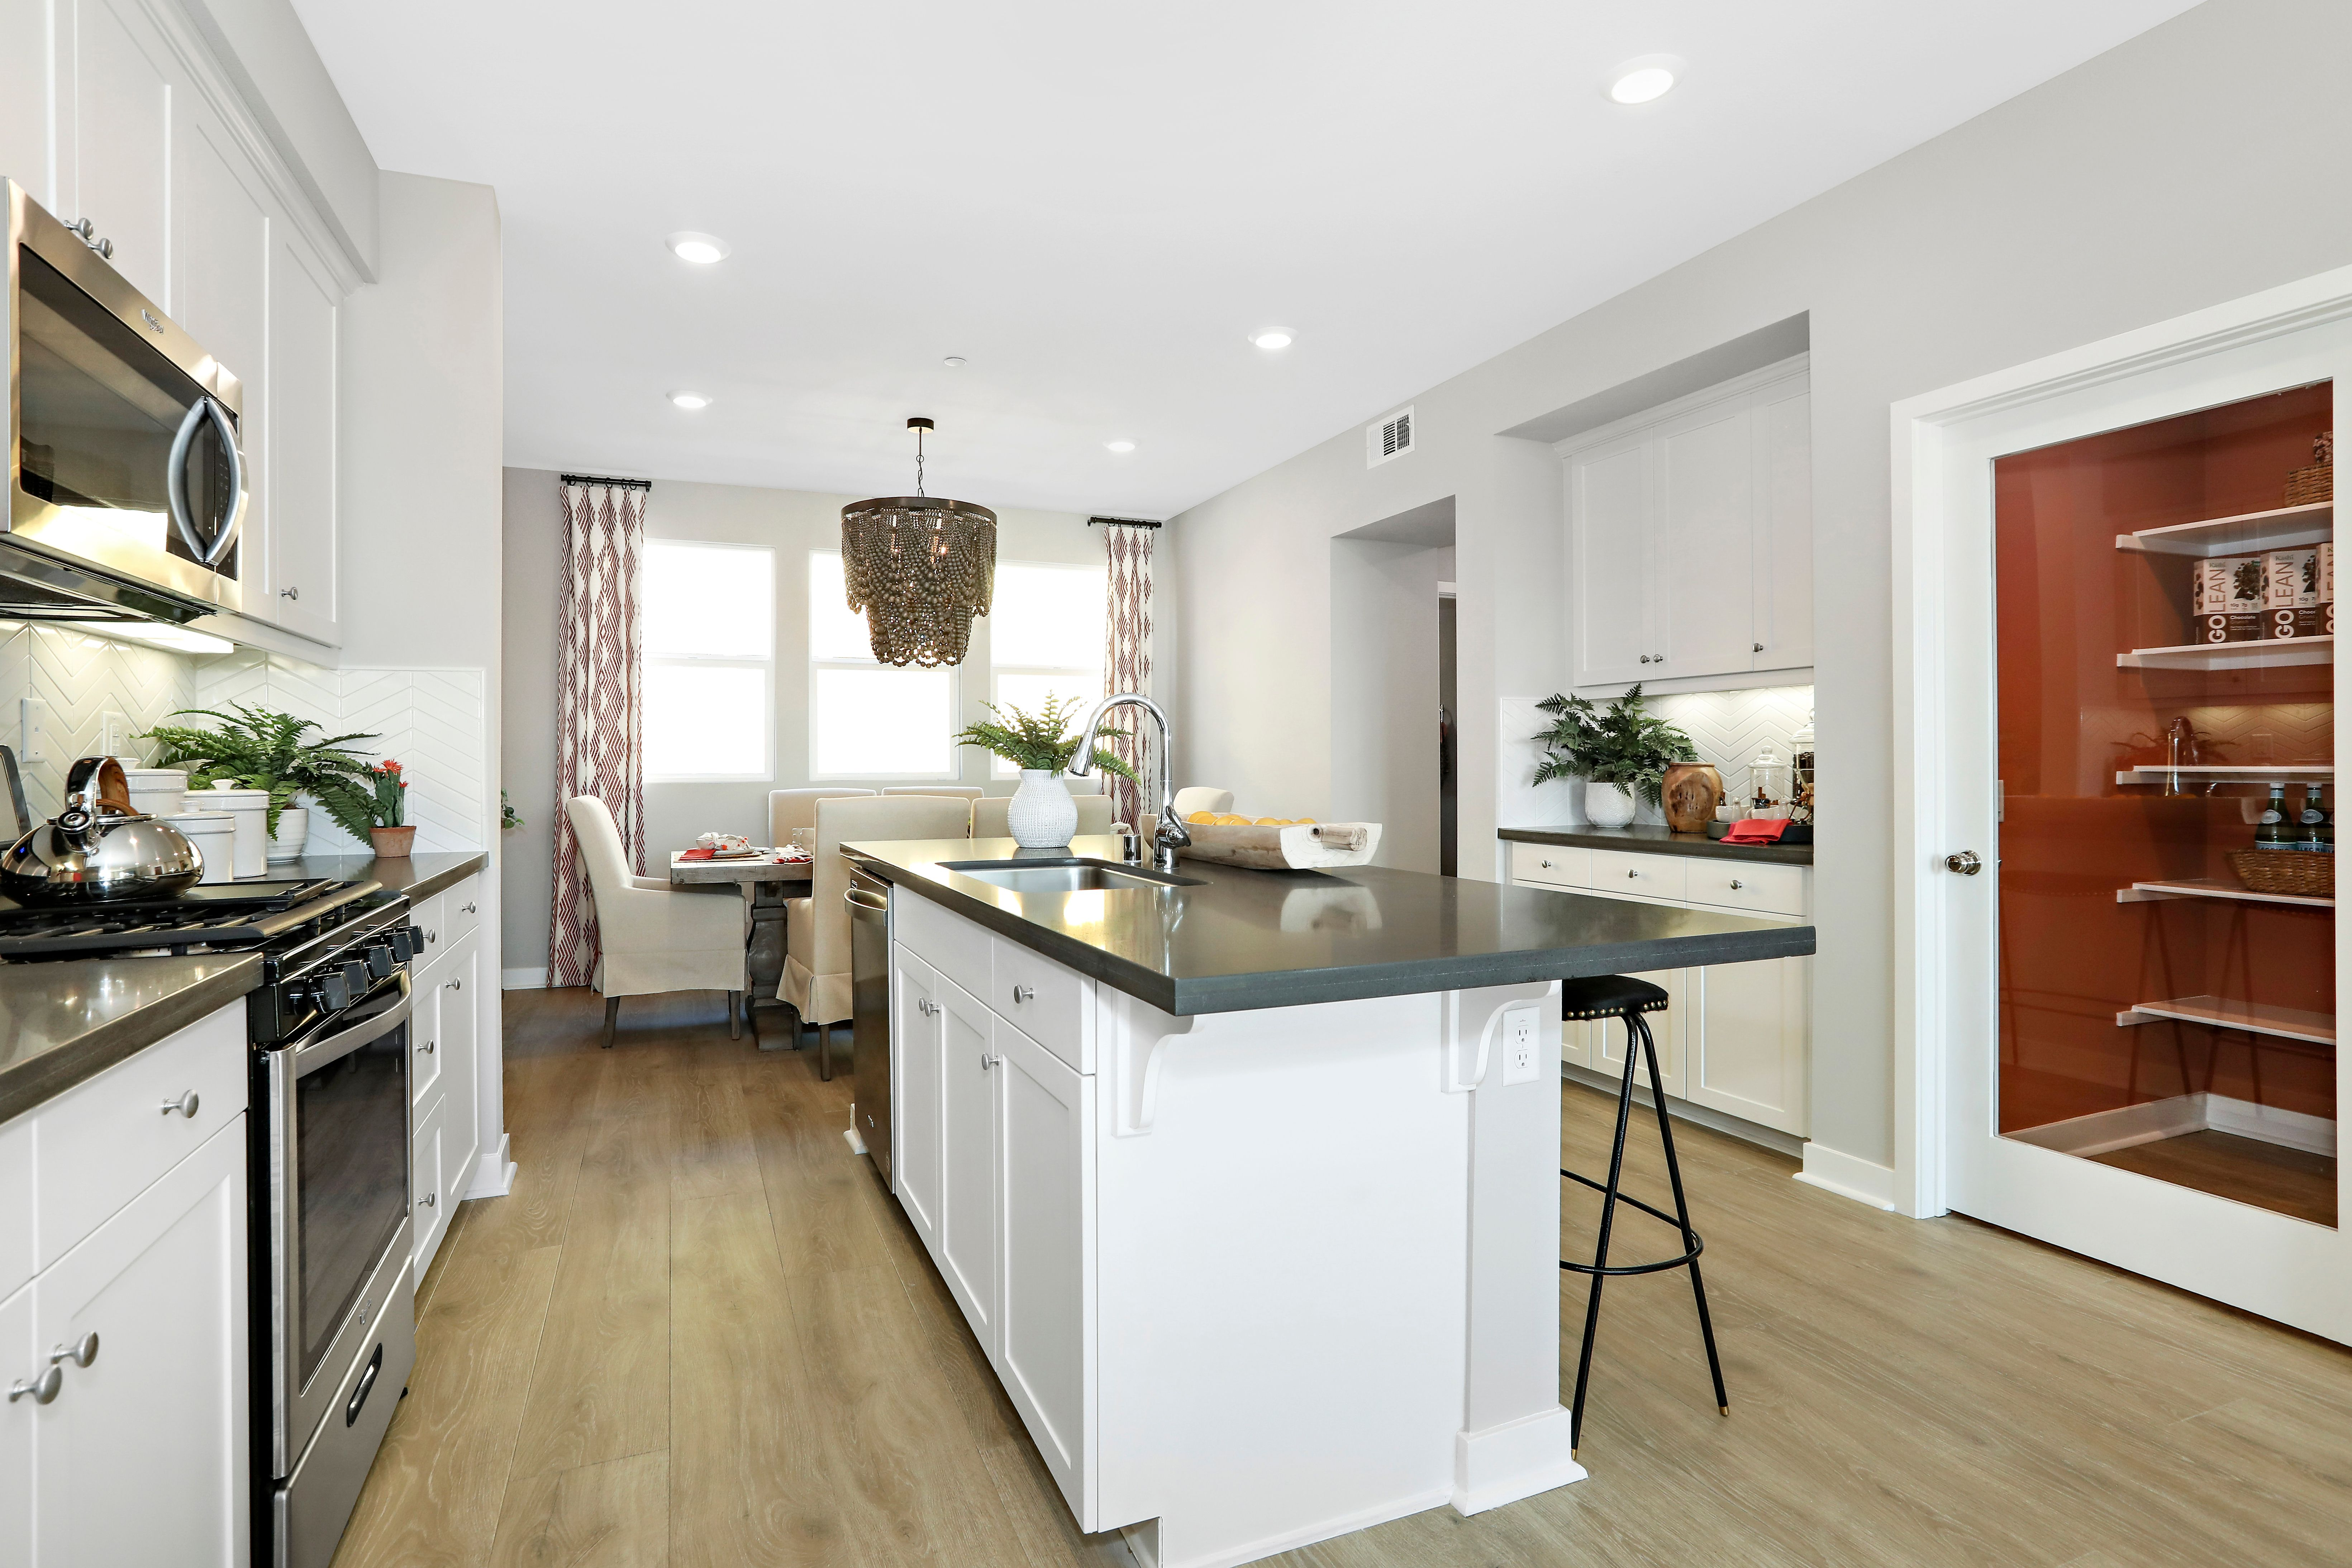 Kitchen-in-Residence Two-at-Tovara West-in-Sylmar